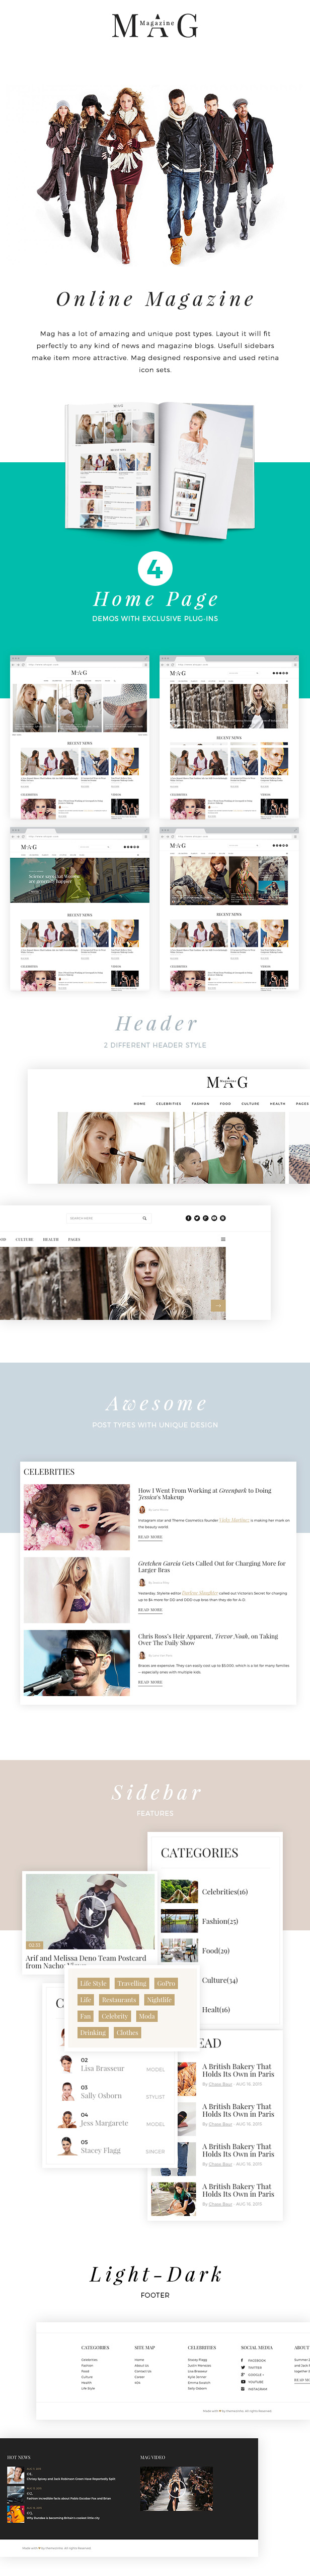 Mag | Online News & Magazine HTML Template